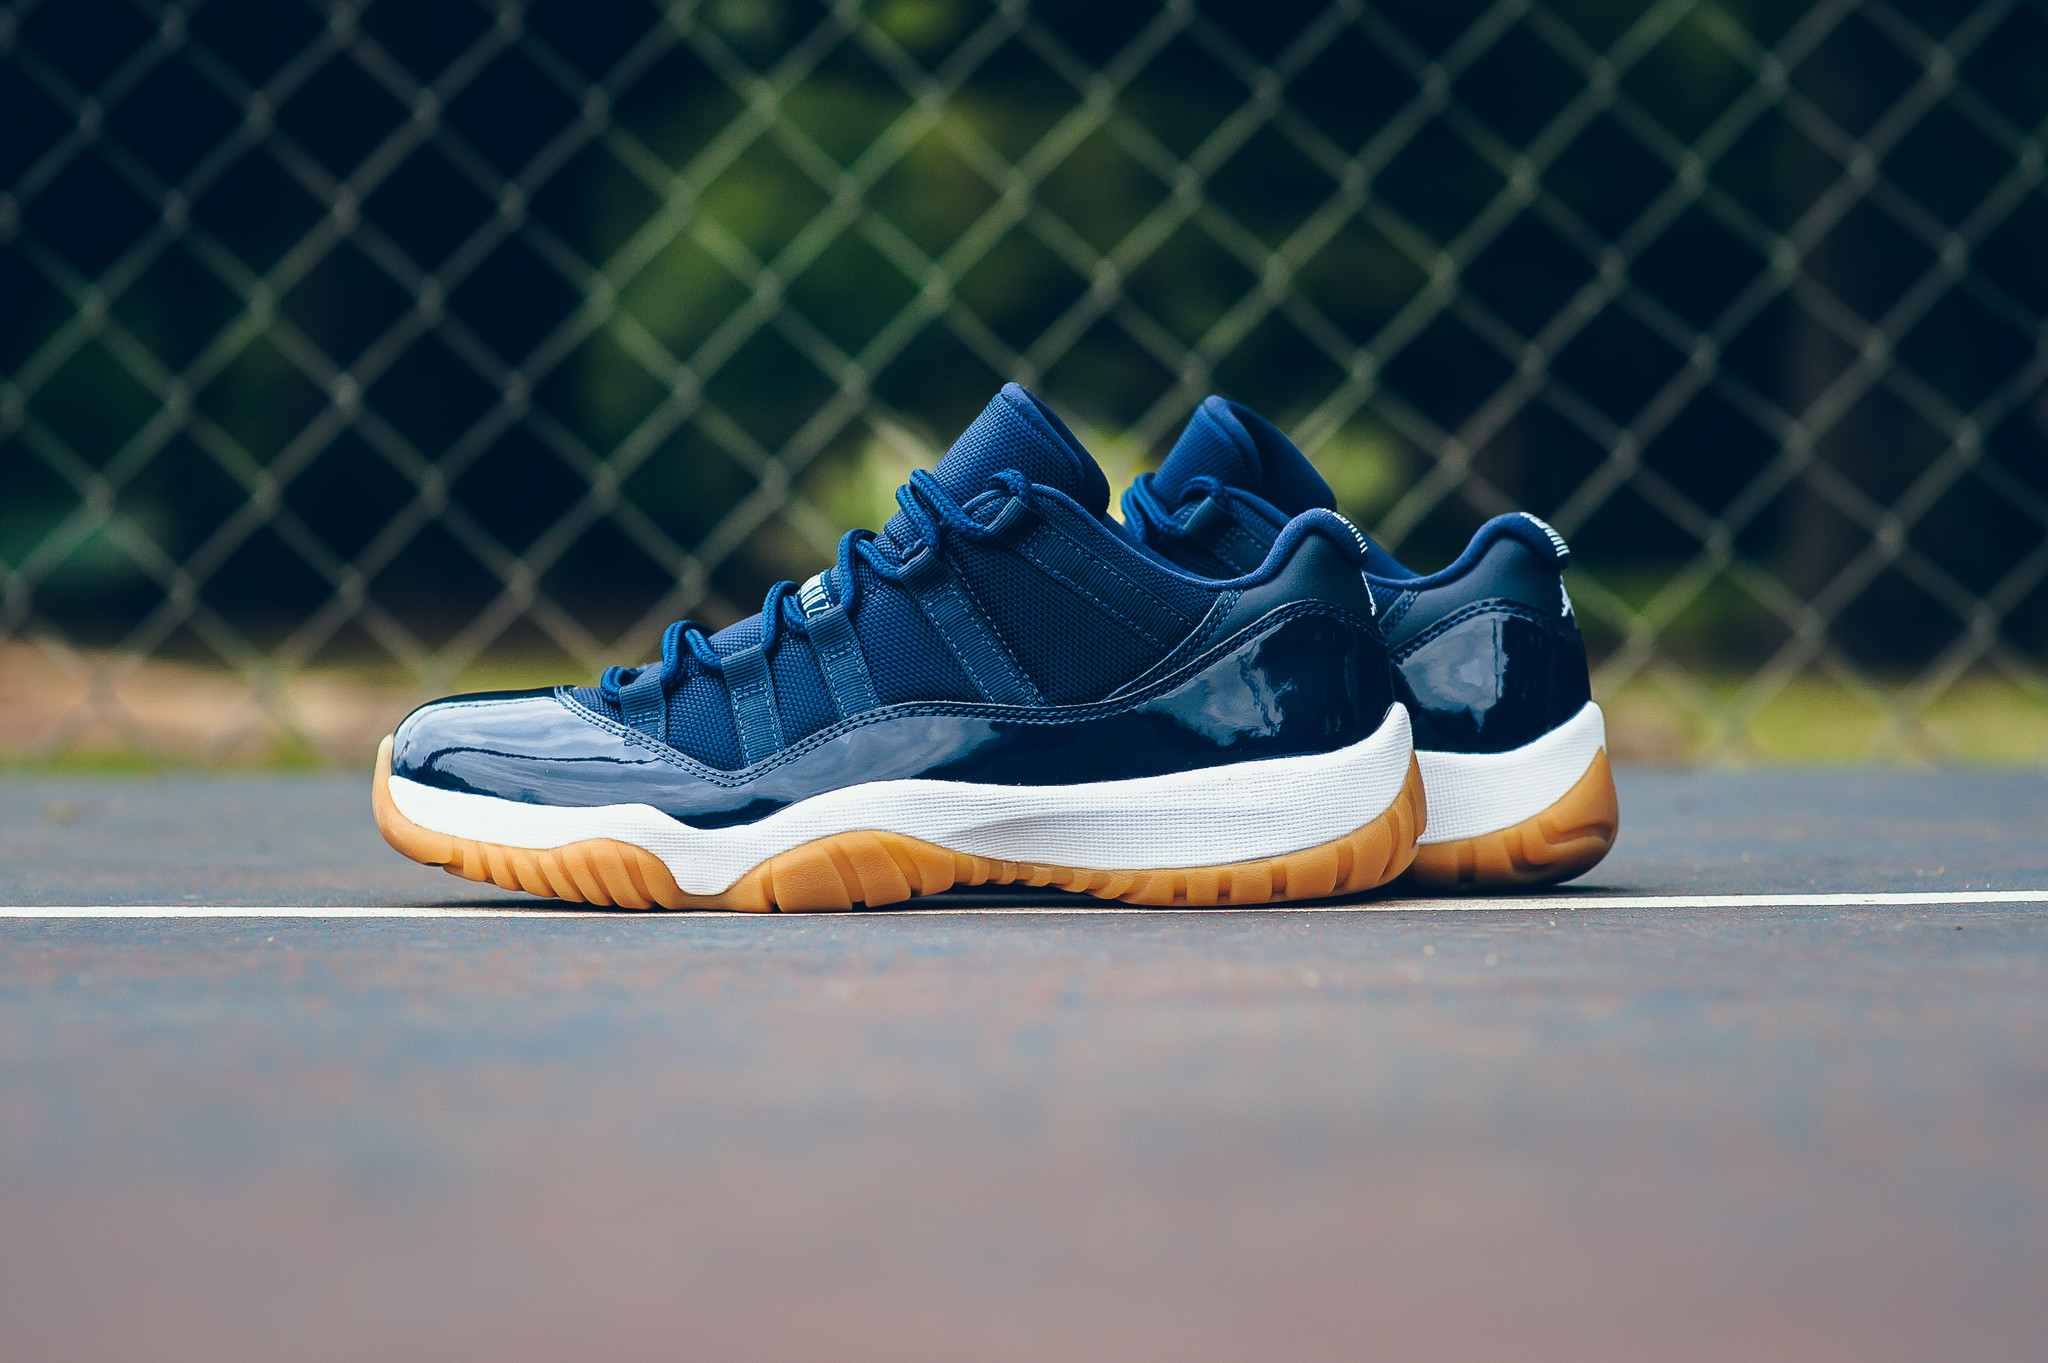 f4472c543b864f Air Jordan XI Retro Low Midnight Navy - New Images - Air 23 - Air Jordan  Release Dates